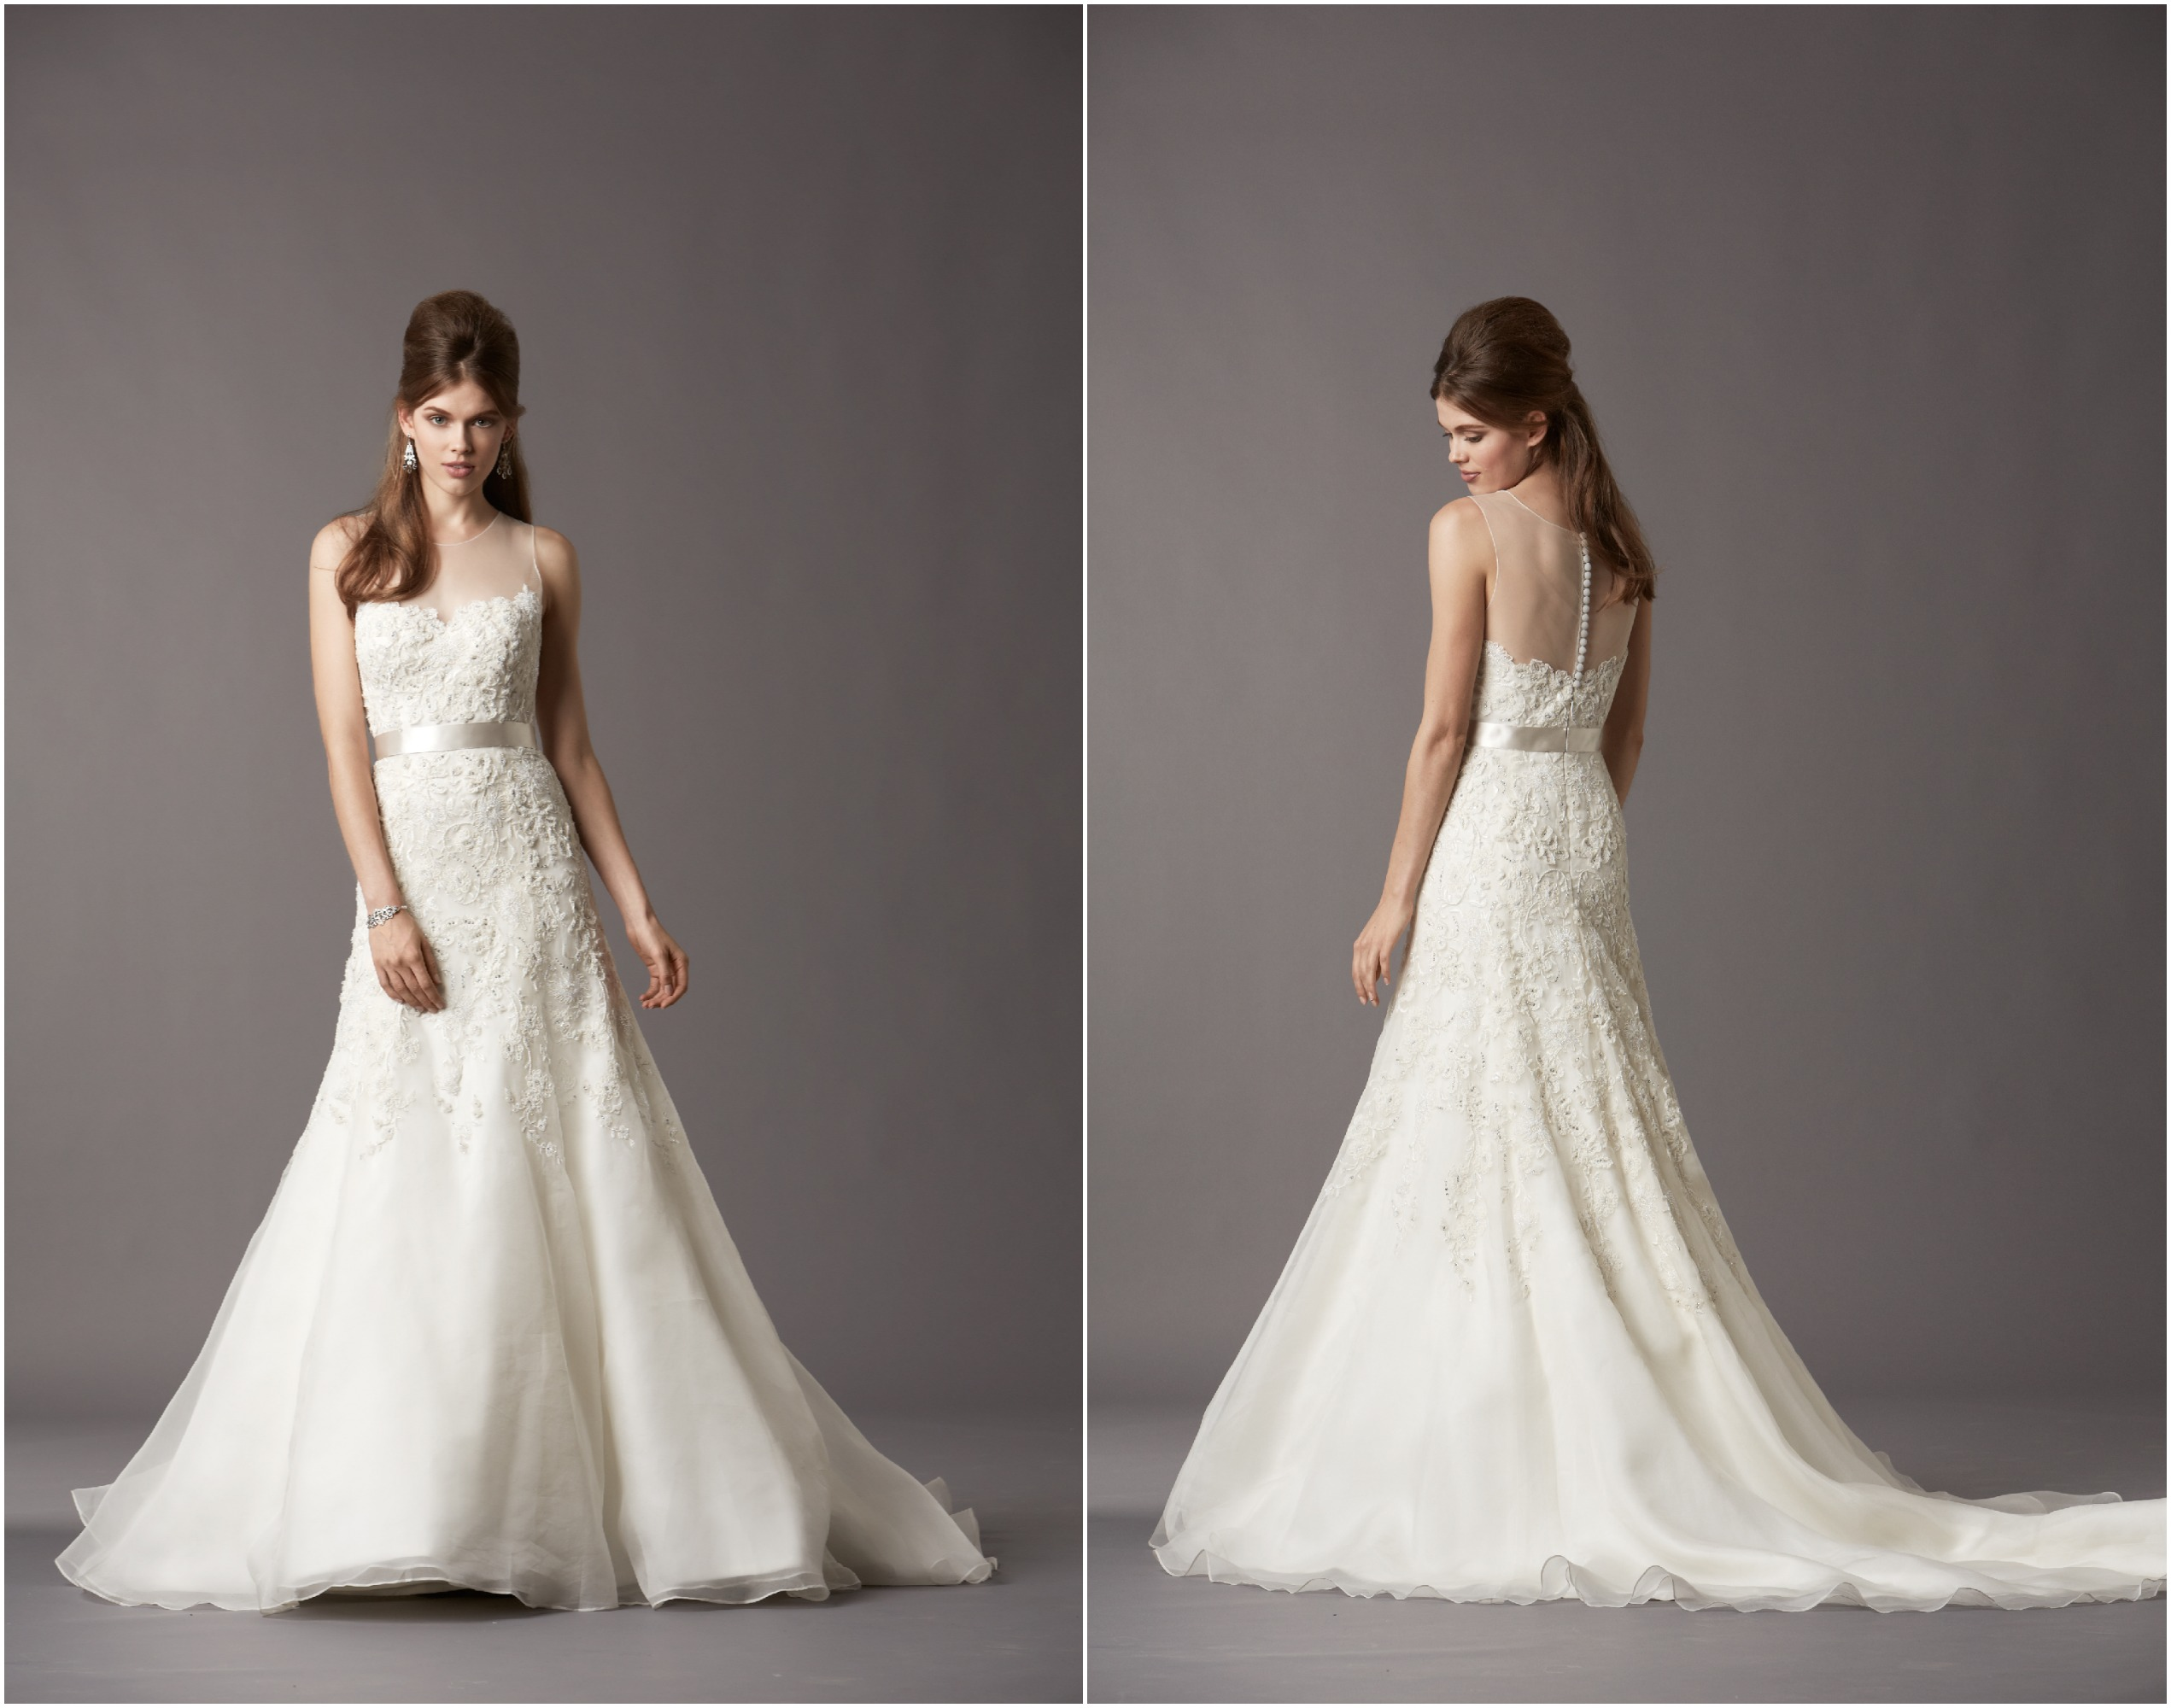 country style wedding dress with cowboy boots rustic style wedding dresses Cowboy Boots For Wedding Party Jhenderson Studios Mixed Gender